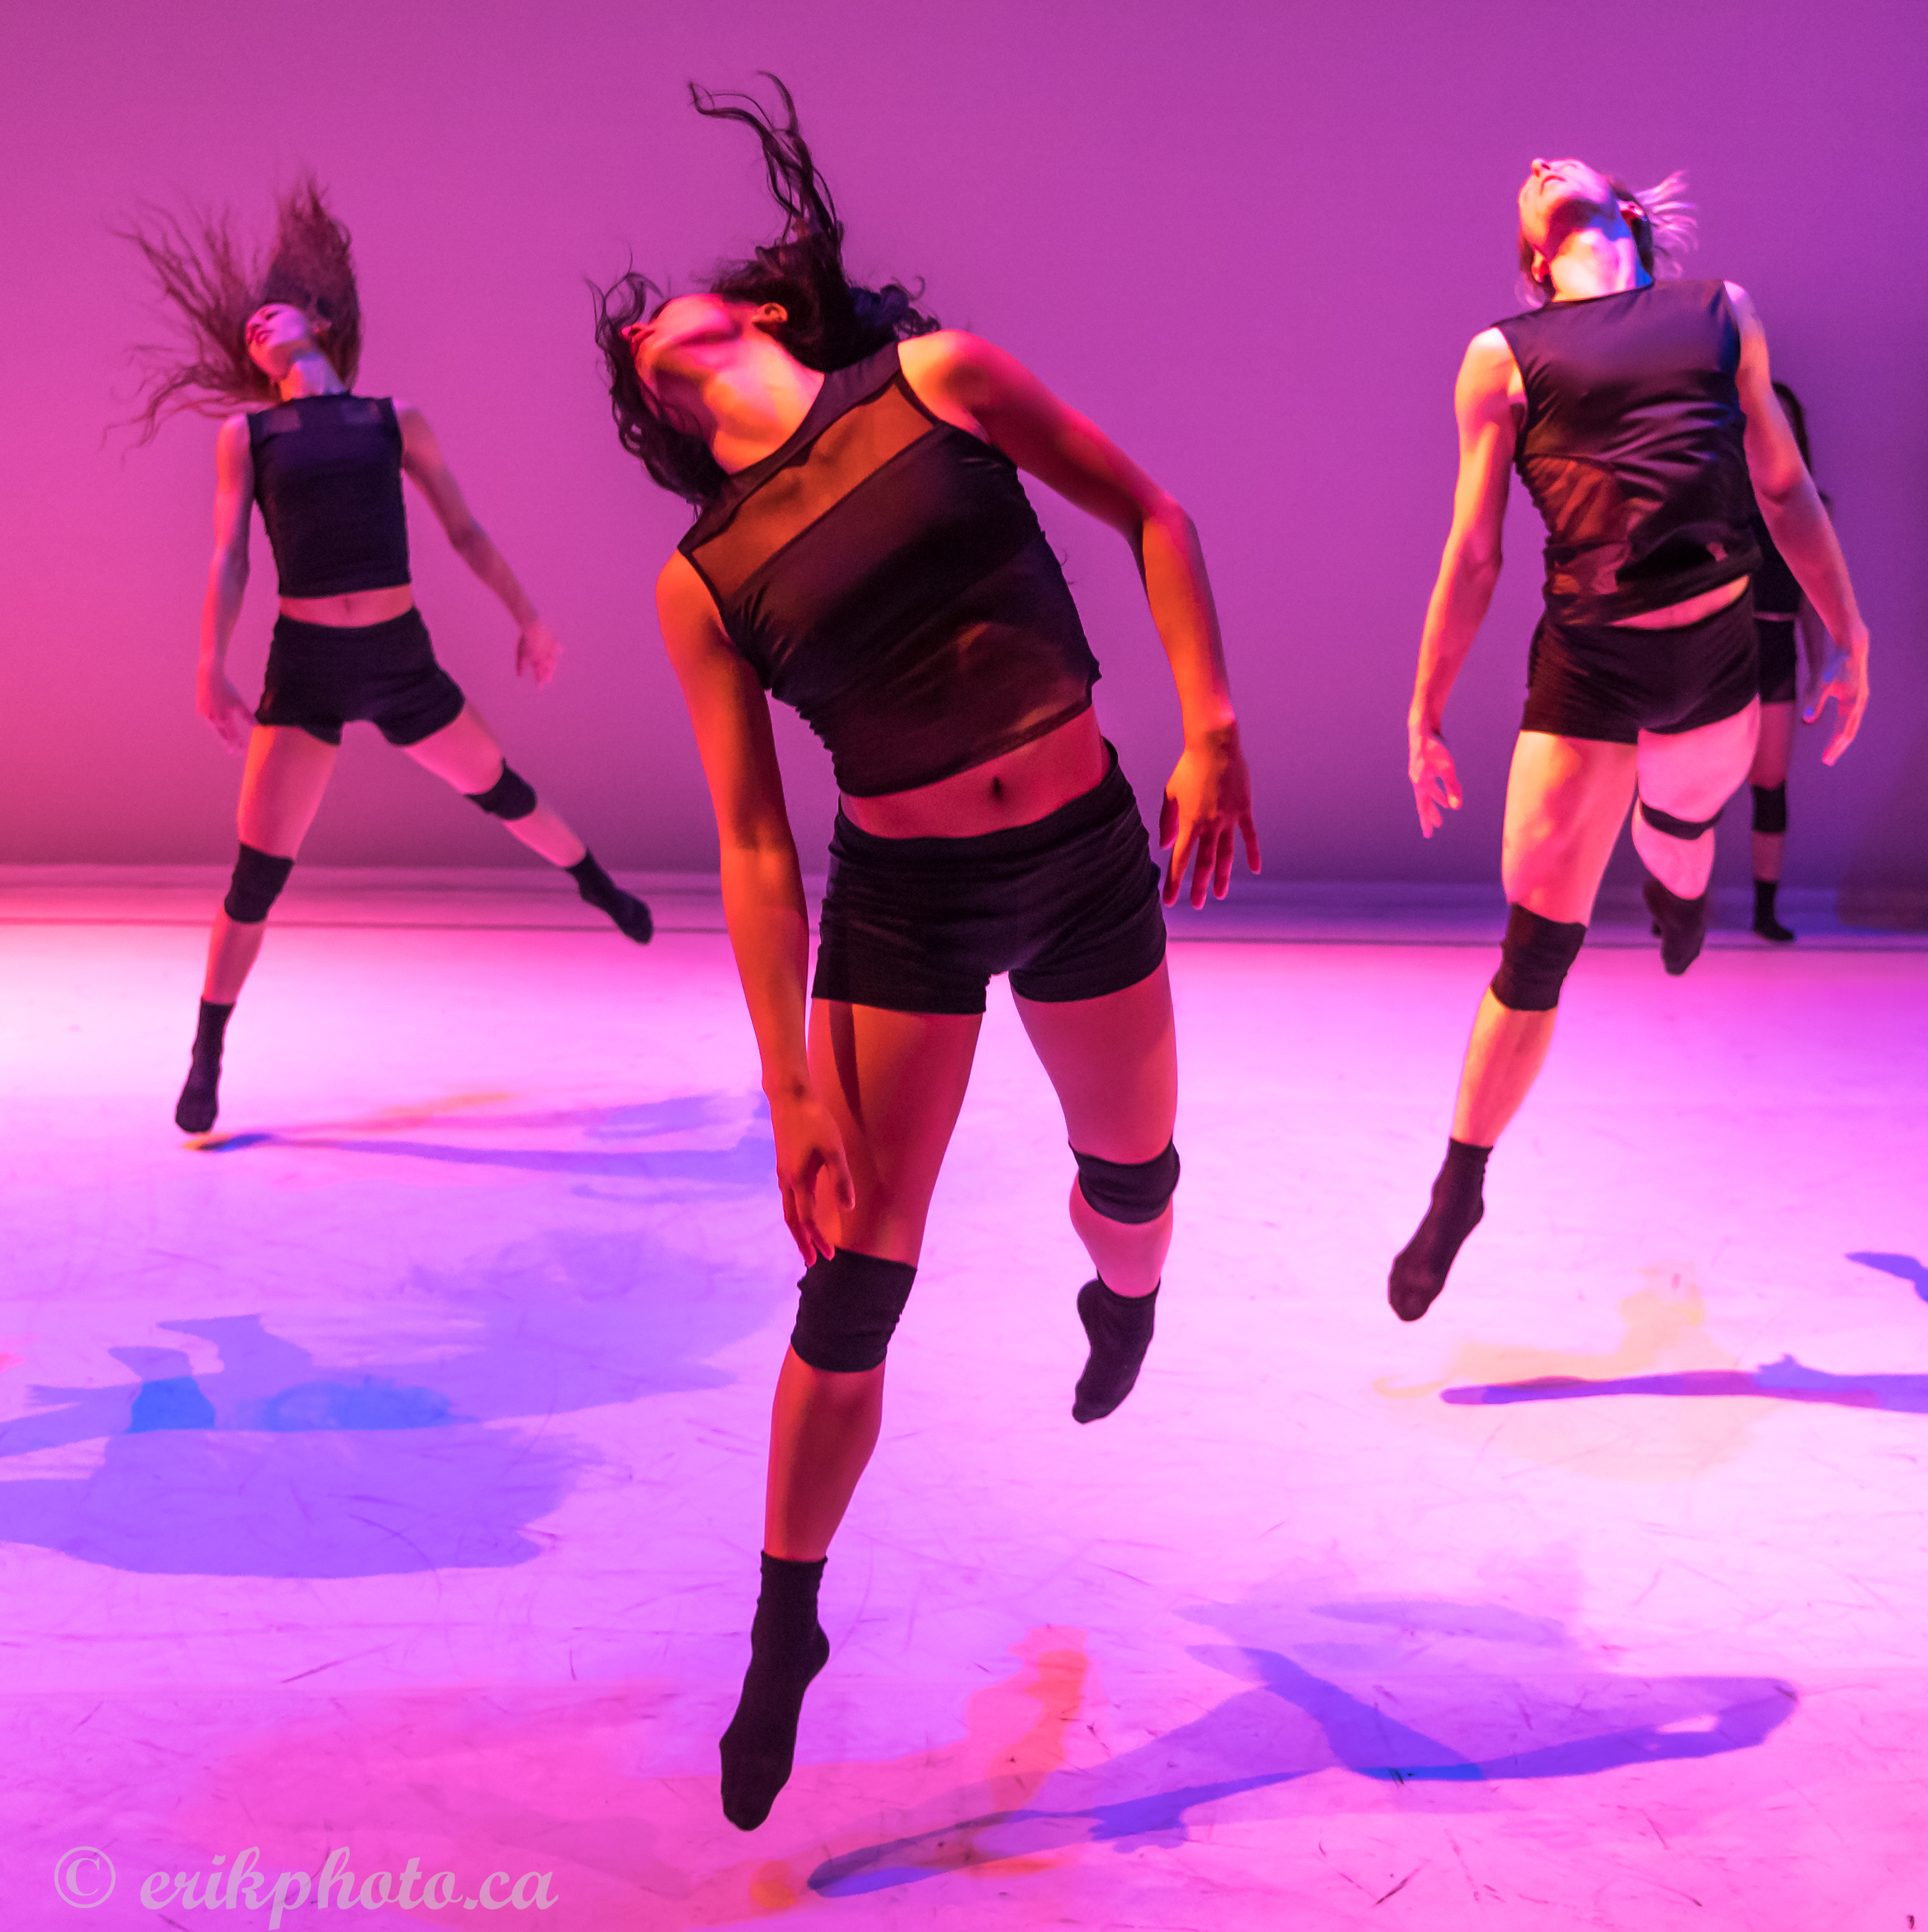 Dance artists from Vision Impure perform in Pathways